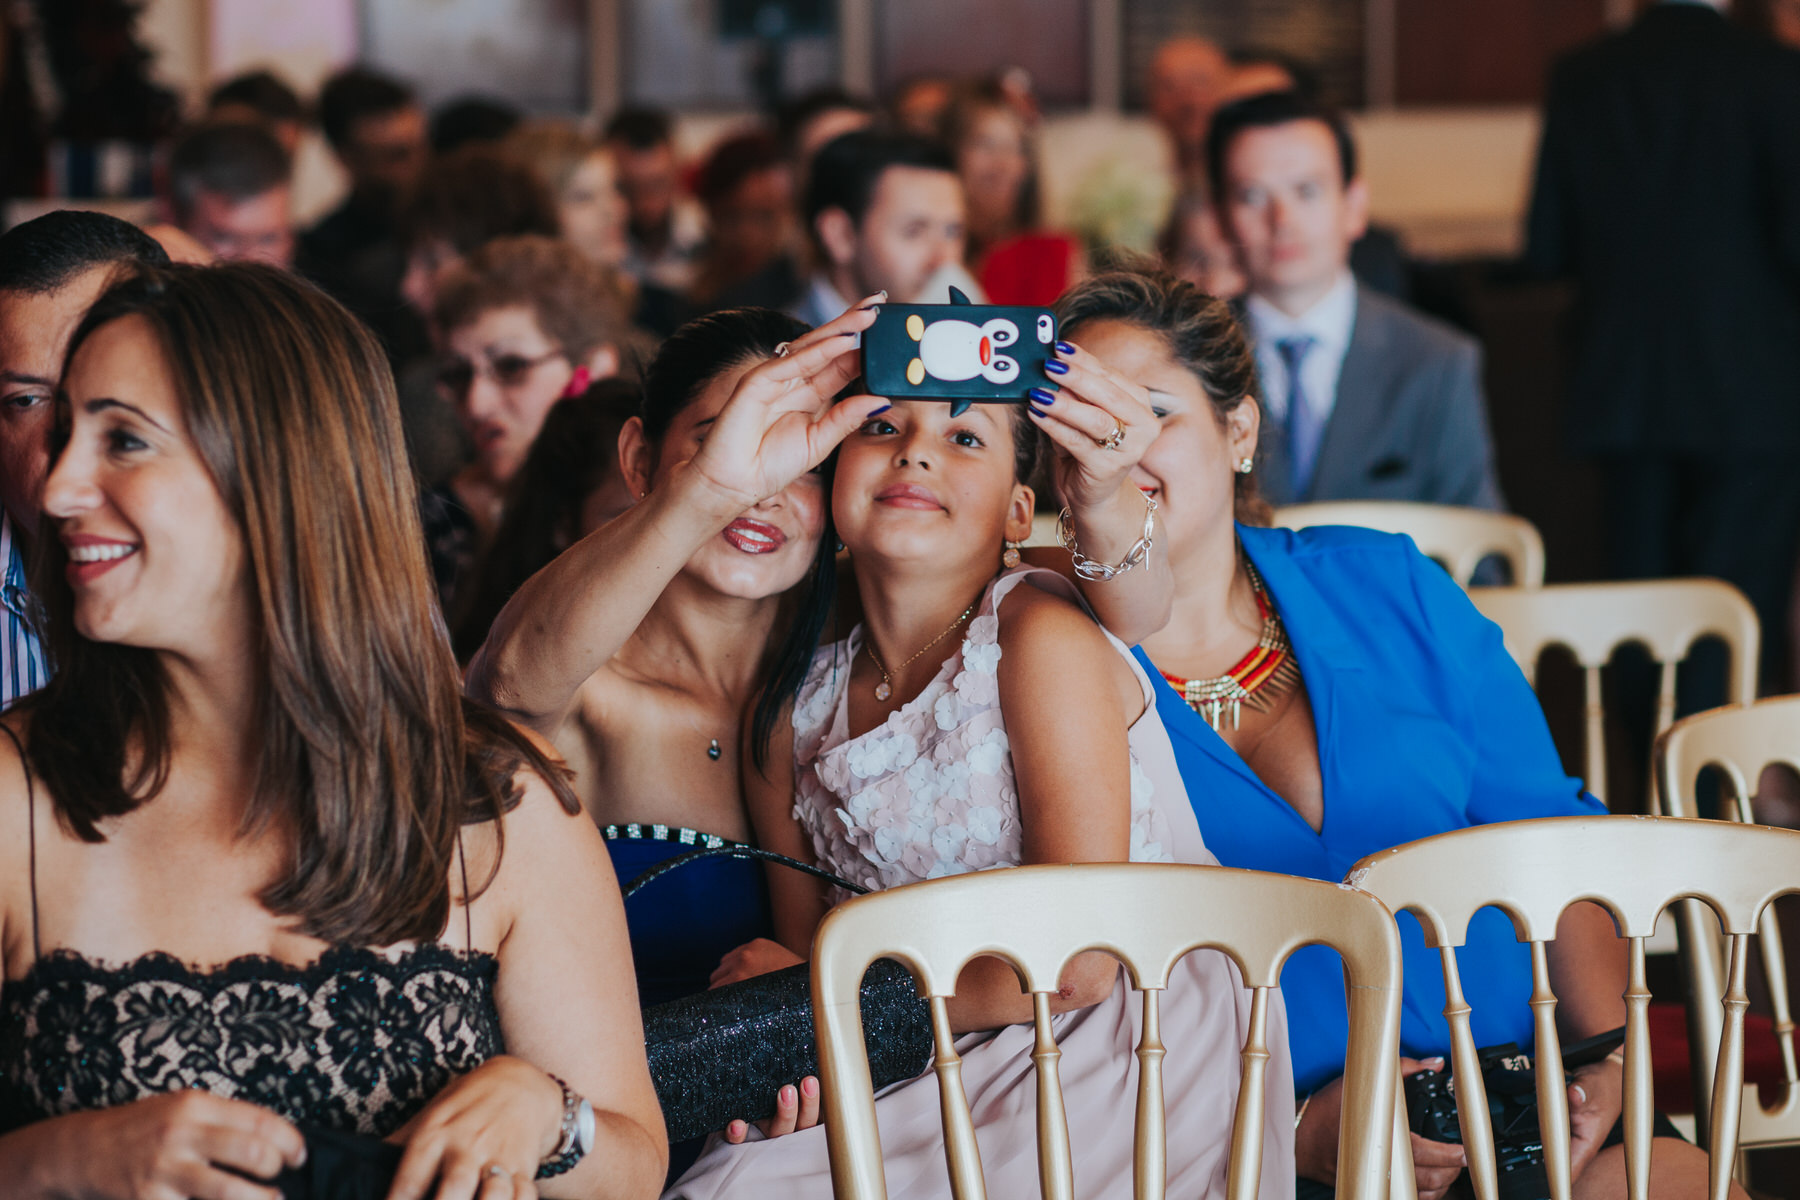 65 Trafalgar Tavern wedding guests selfies.jpg